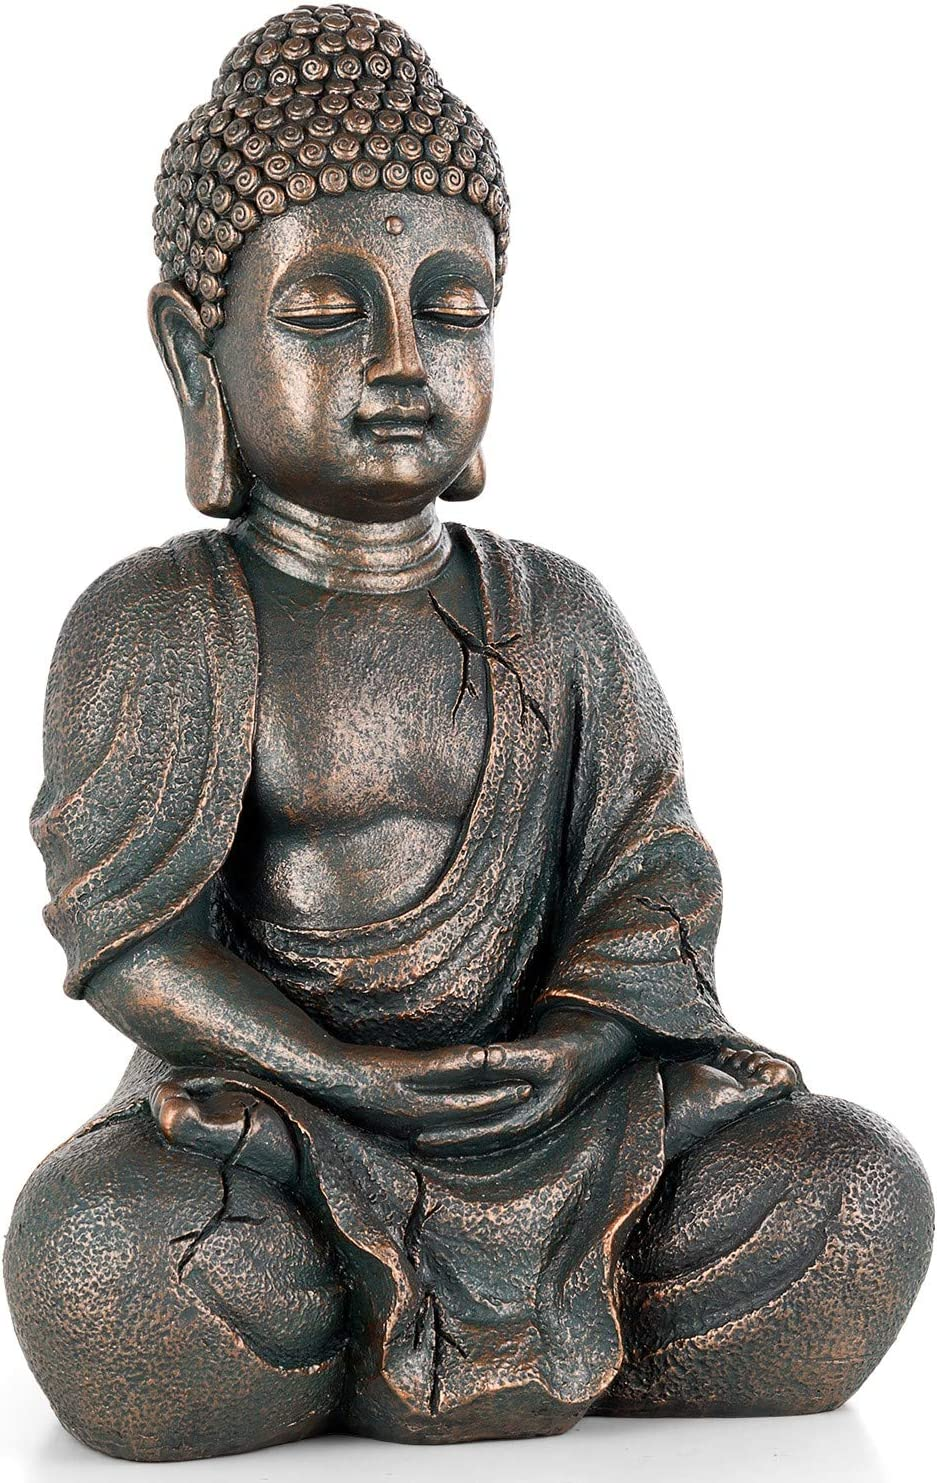 "DBassinger Meditating Seated Buddha Statue, 14.7"" Tall Antique Bronze Statuary- Home & Outdoor Decor for Garden, Patio, Deck, Porch - Yard Art Decoration"